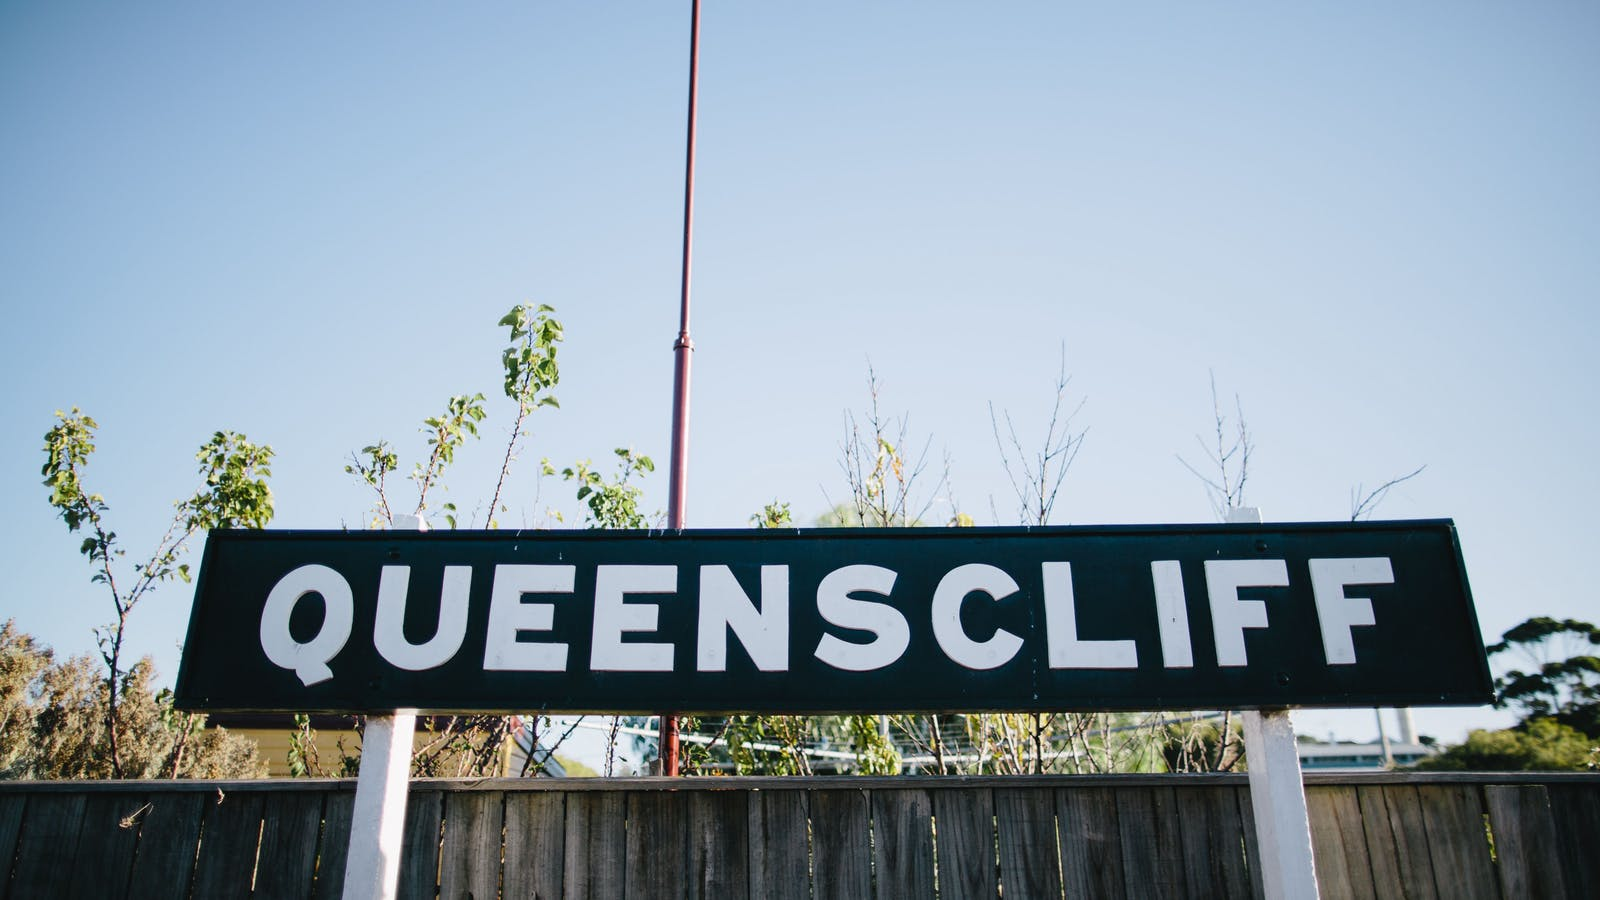 Queenscliff Railway Station - home of The Blues Train